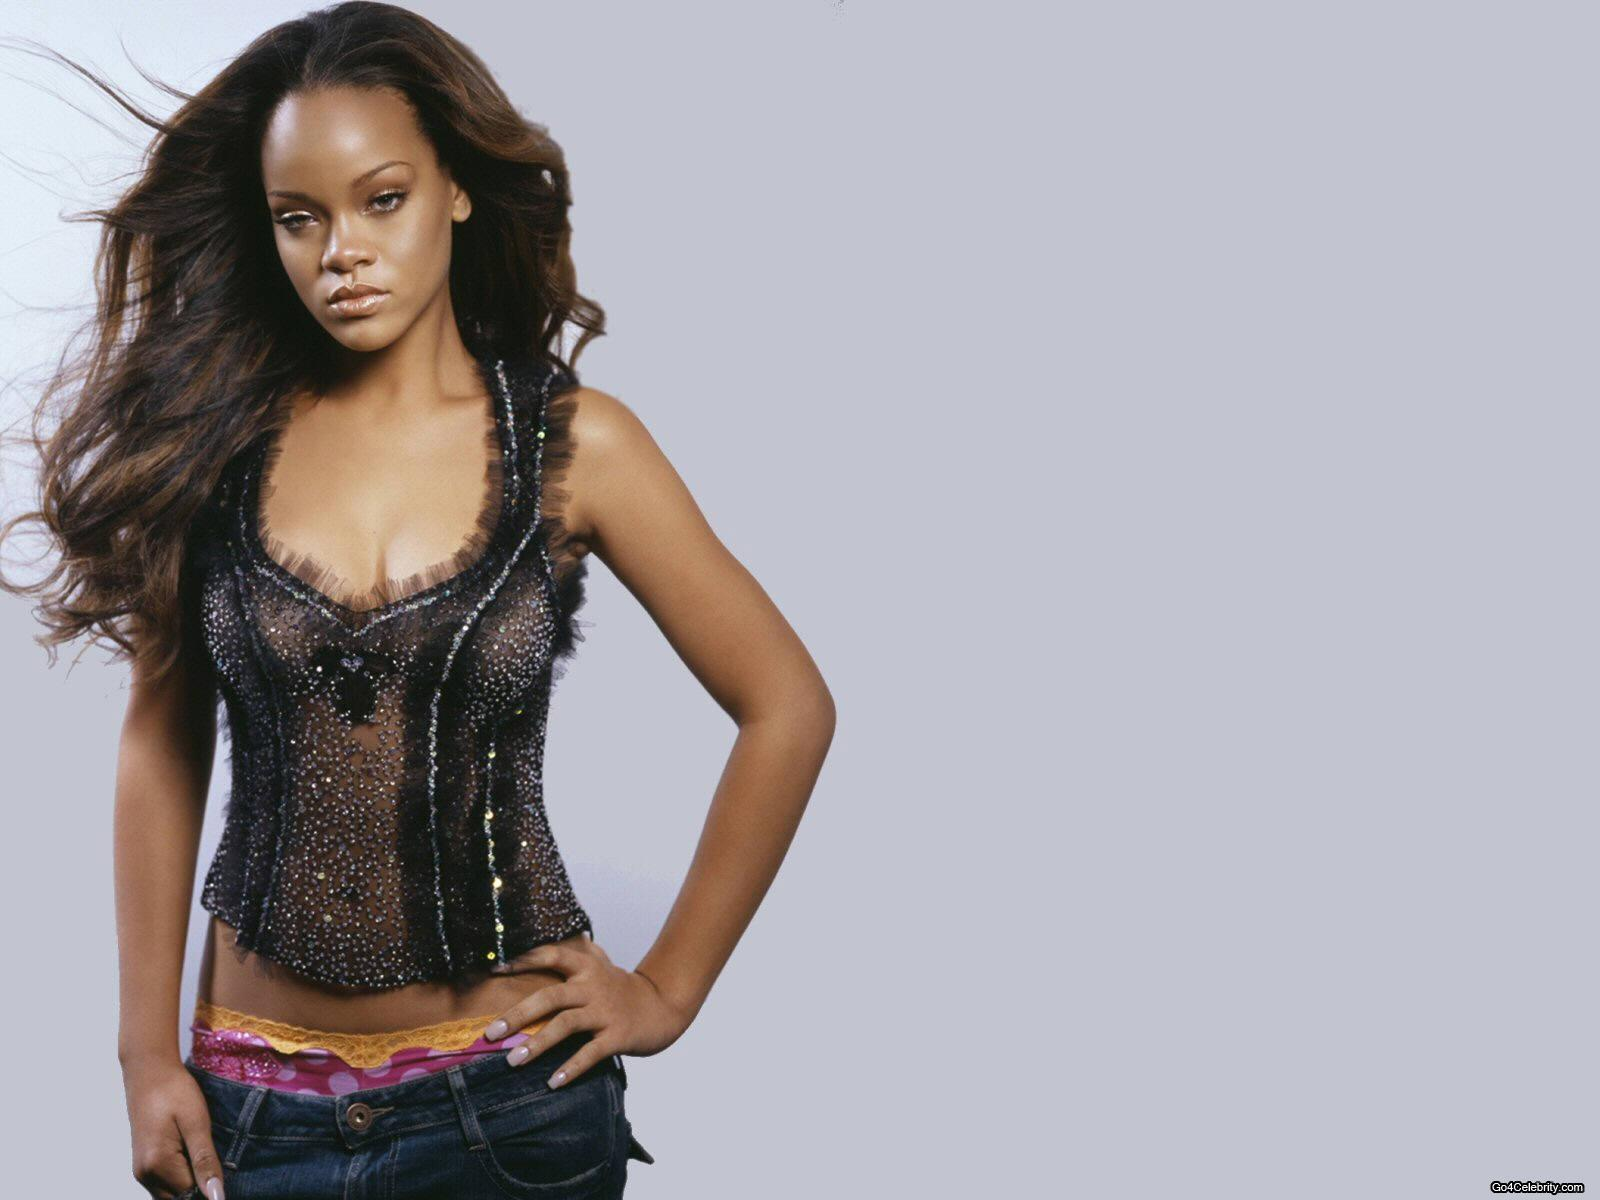 http://images2.fanpop.com/images/photos/6800000/Rihanna-rihanna-6848357-1600-1200.jpg